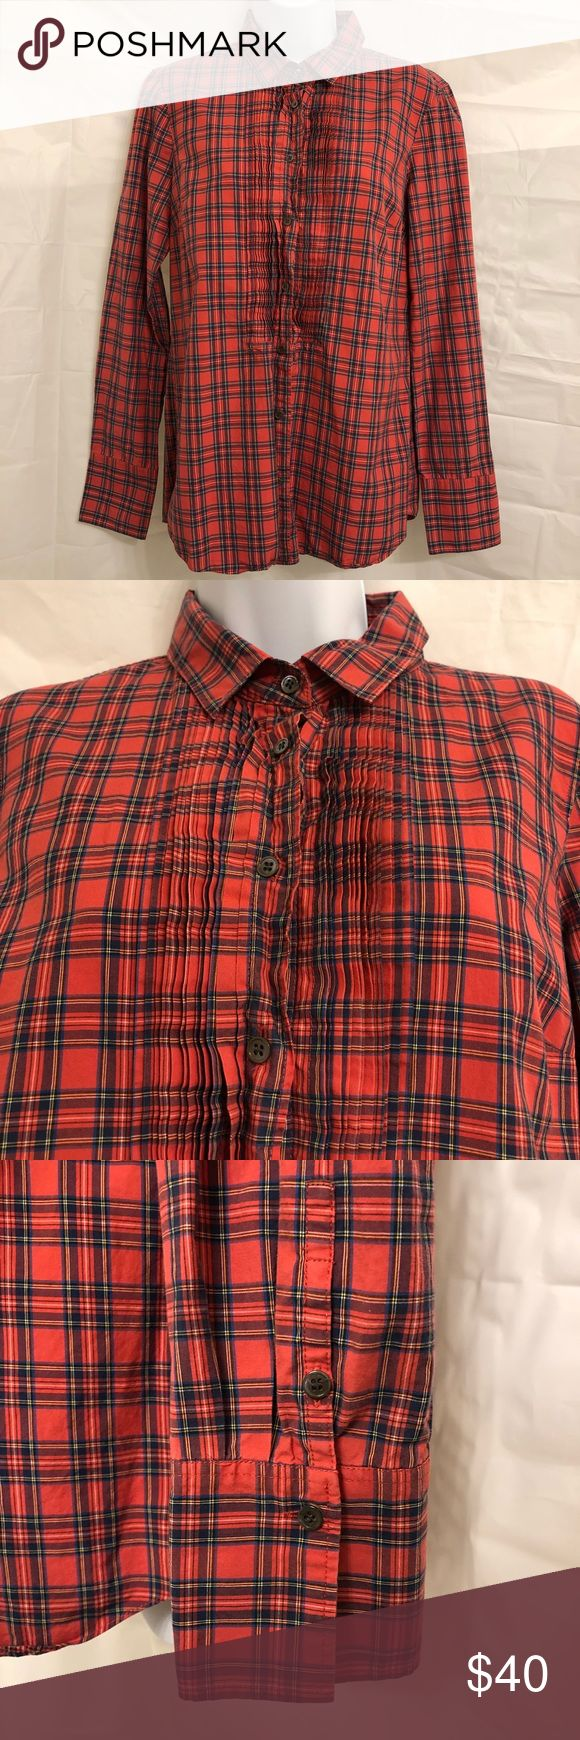 """J Crew button down J. Crew button down flannel. """"Tartan tuxedo shirt""""  SOLD OUT on J. Crew website  100% cotton NO TRADES  Bundles over $50 get free shipping J. Crew Tops Button Down Shirts"""